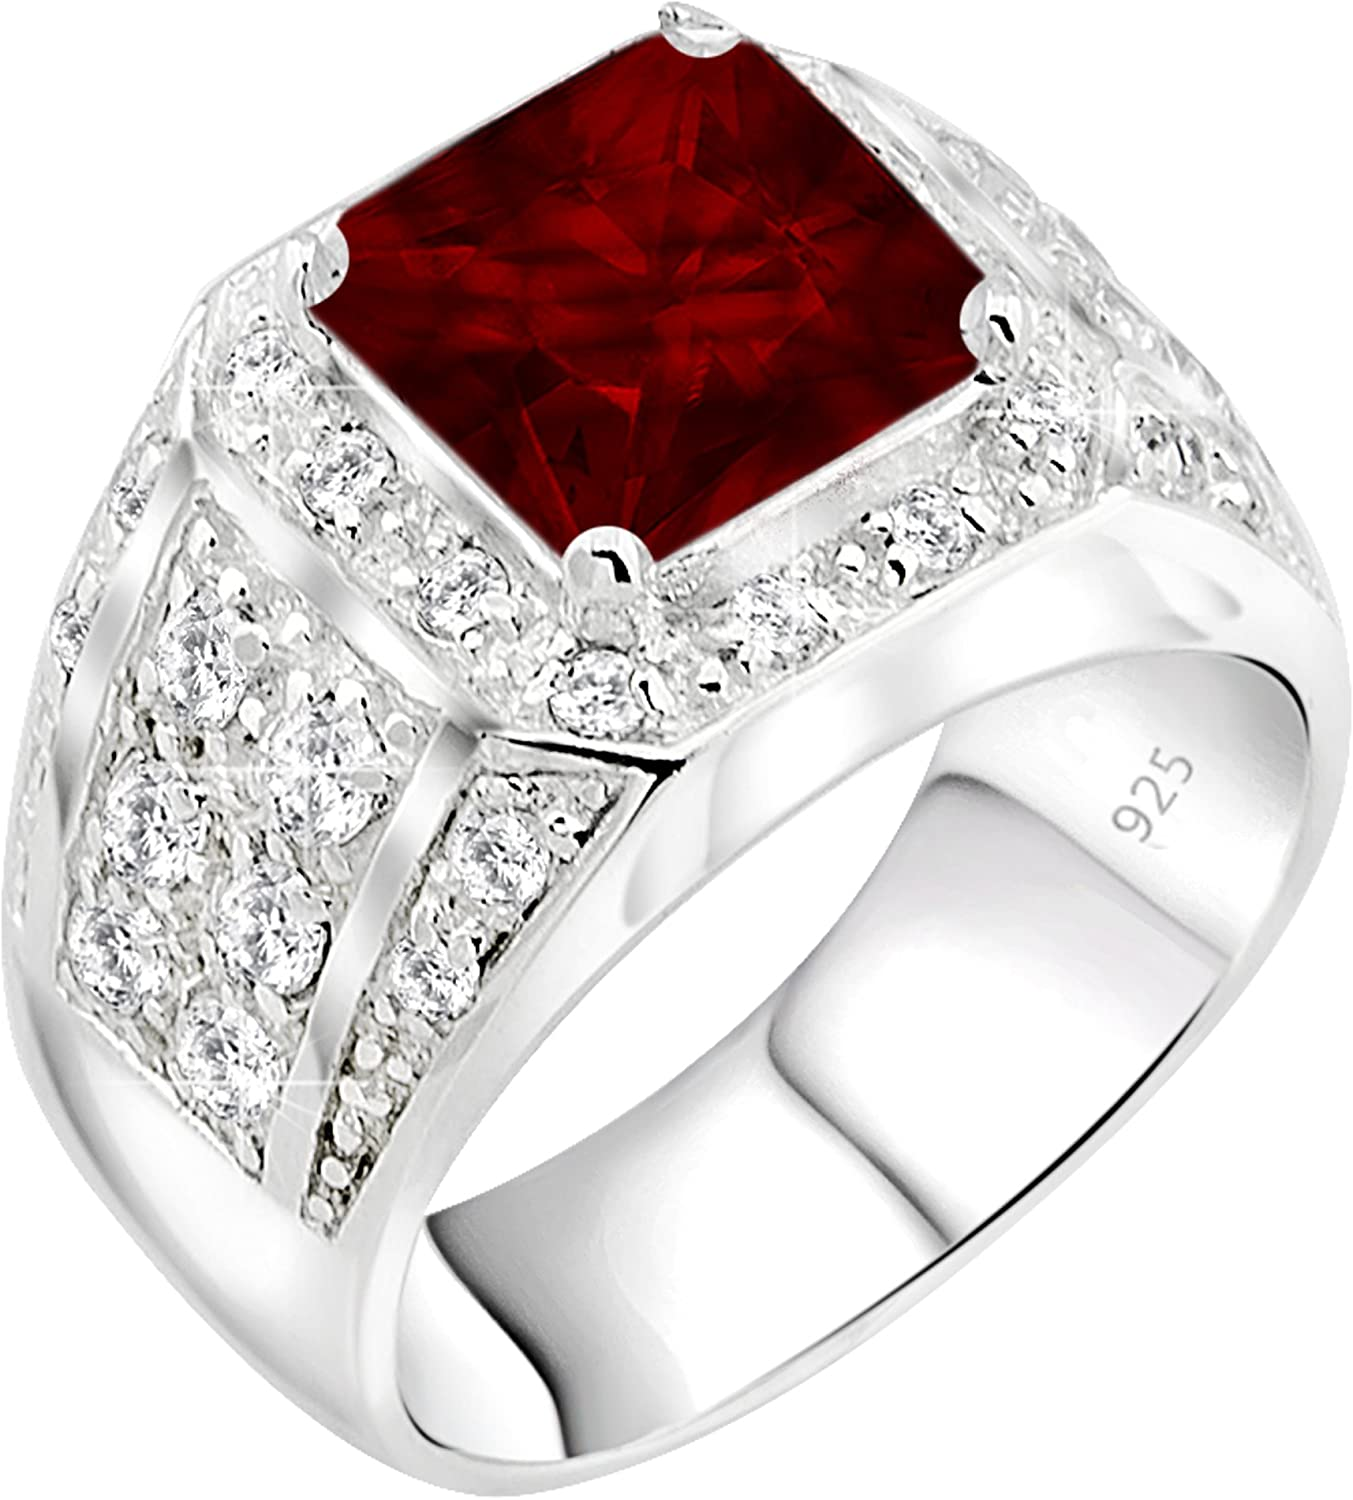 [2-5 Days Delivery] Men's Sterling Silver .925 Princess-Cut Ring Featuring a Synthetic Red Ruby Surrounded by 32 Fancy Round Prong-Set Cubic Zirconia Stones, Perfect for the Holidays